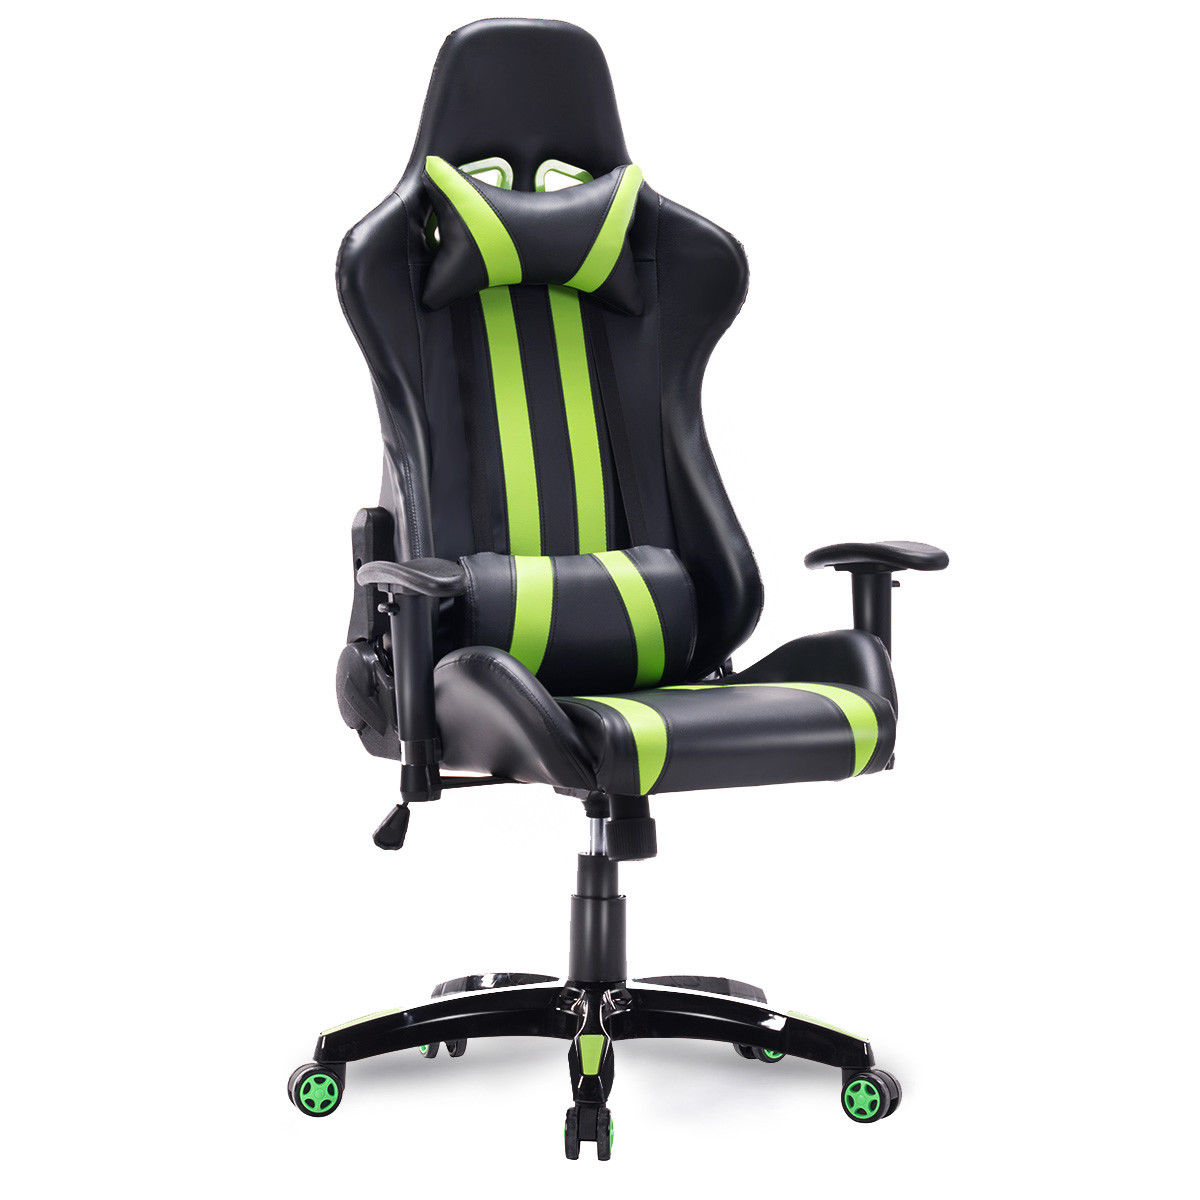 Giantex High Back Racing Style Reclining Chair Modern Ergonomic Gaming Chair Adjustable Office Computer Armchairs HW55211GN